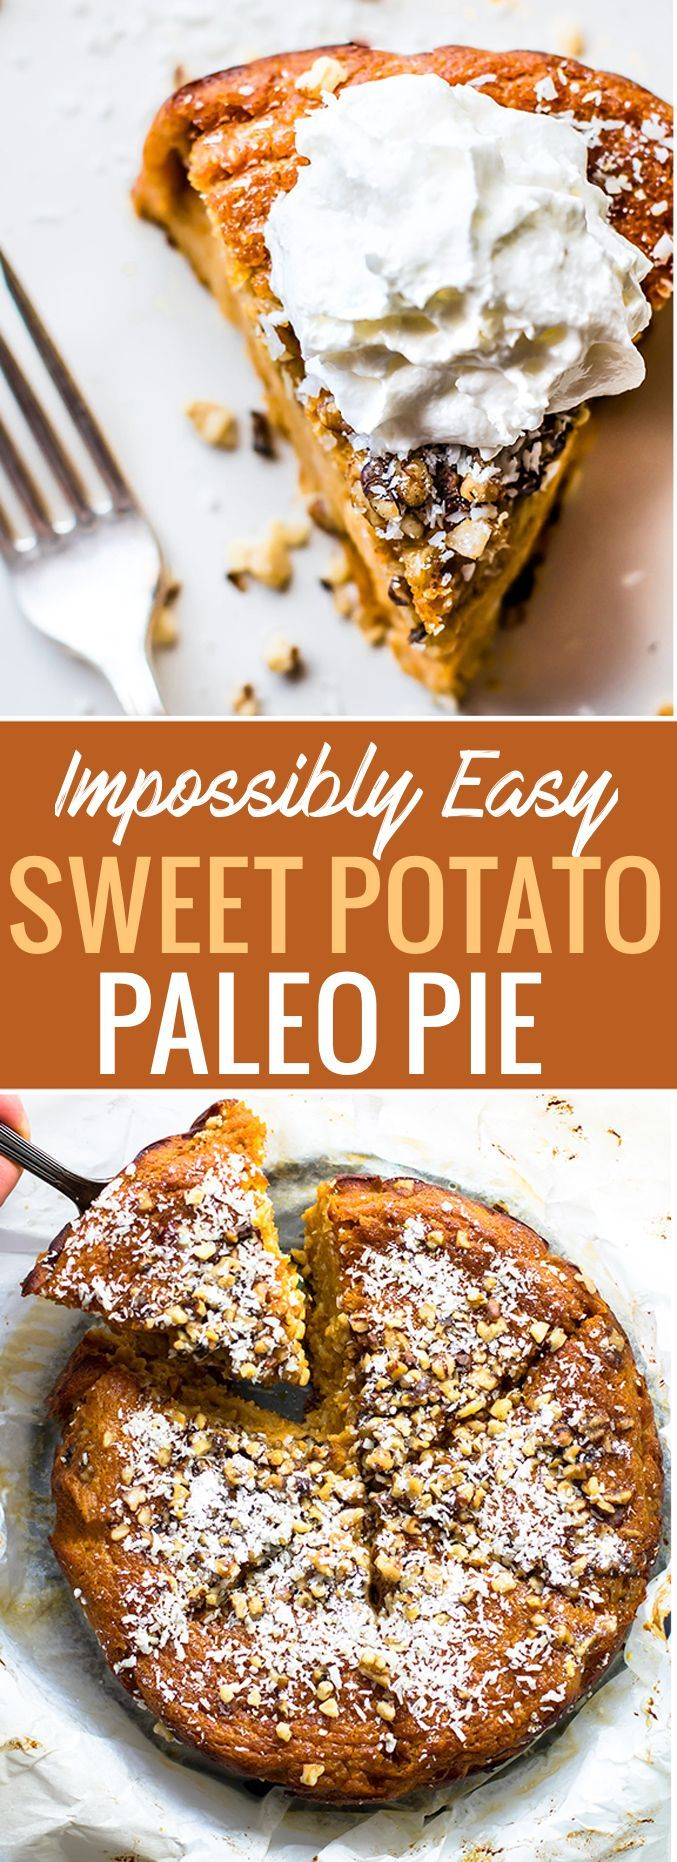 Impossibly Easy Paleo Sweet Potato Pie With Coconut